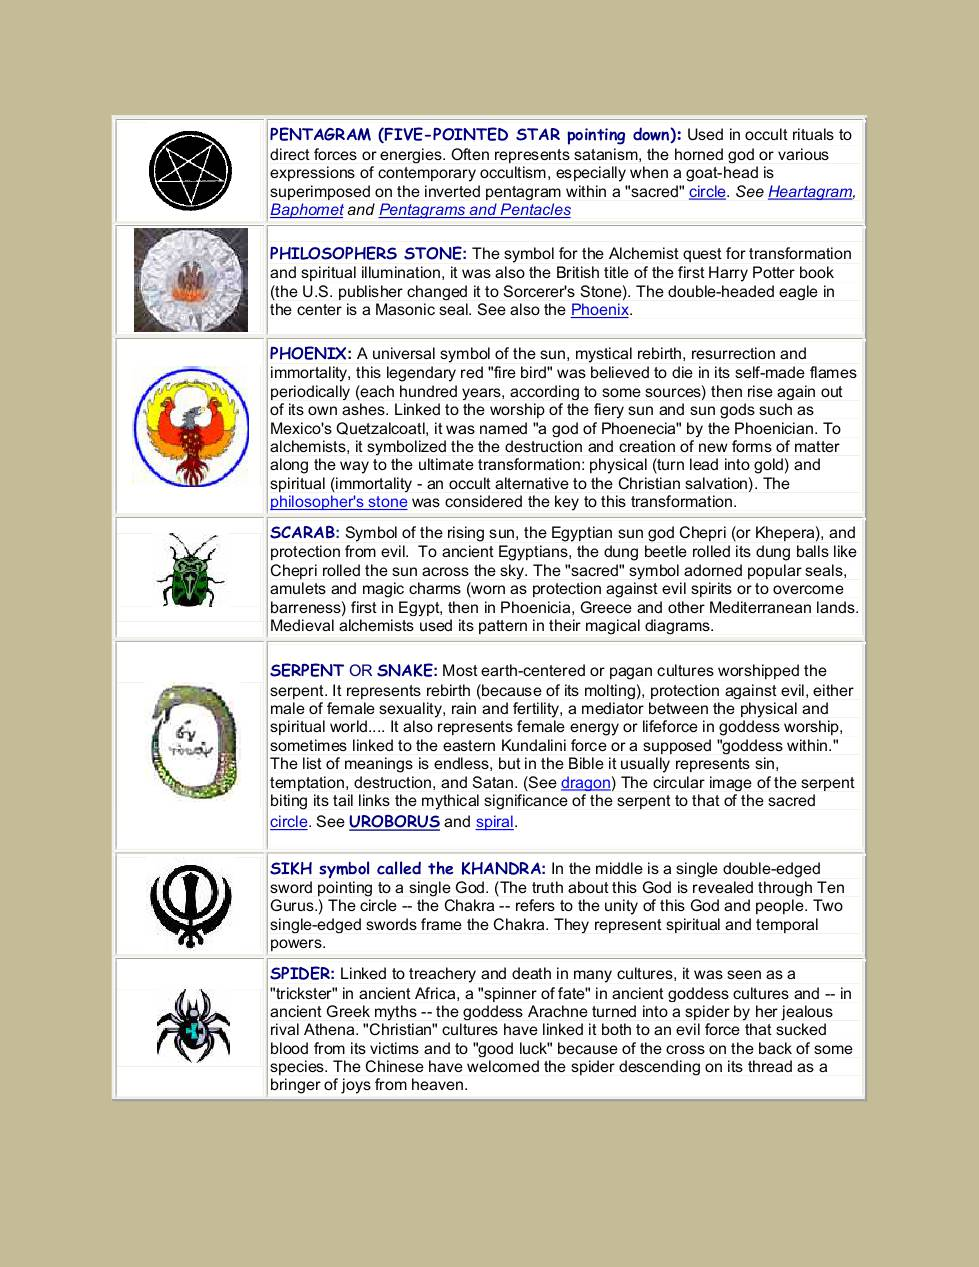 Symbols and their meaning dochub page 1 of 20 biocorpaavc